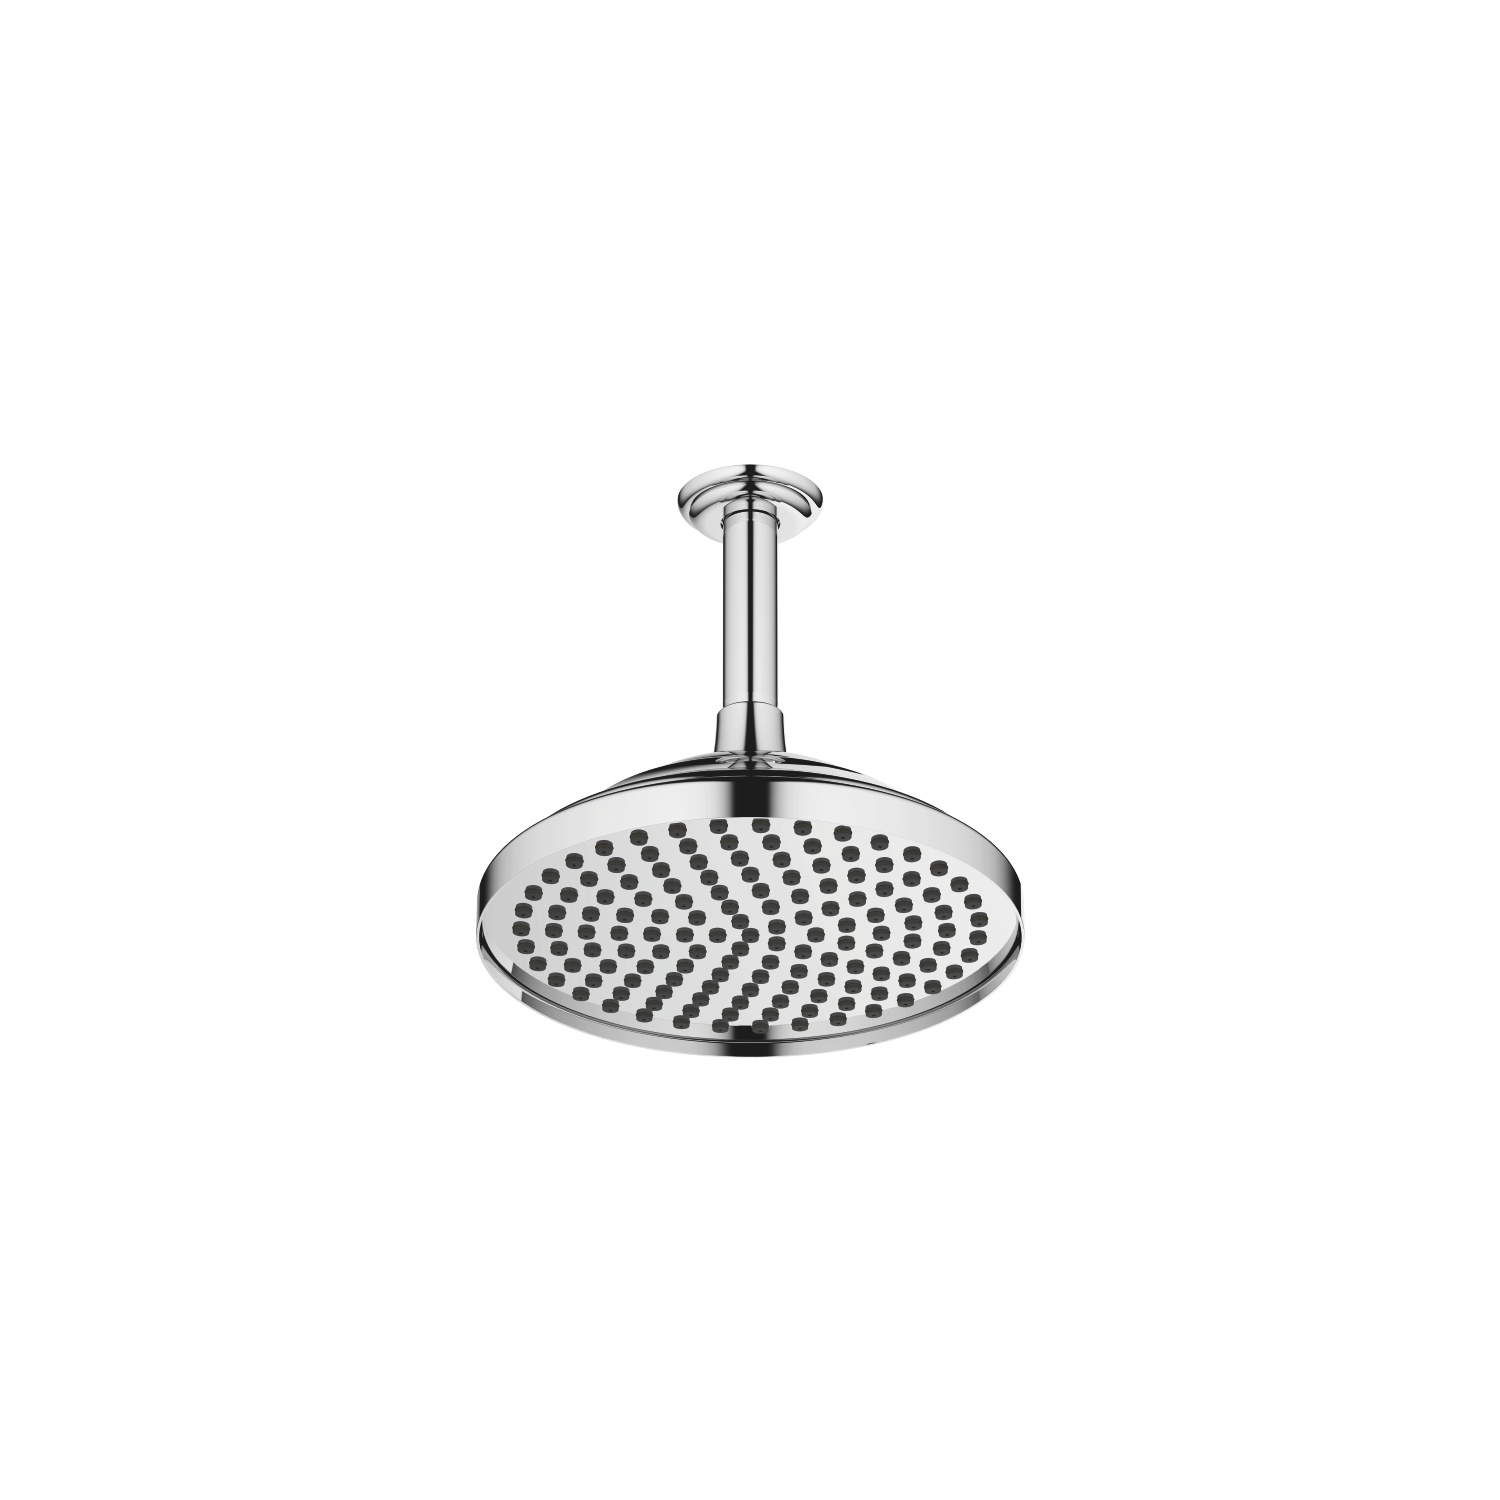 Rain shower with ceiling fixing - polished chrome - 28 565 977-00 0010